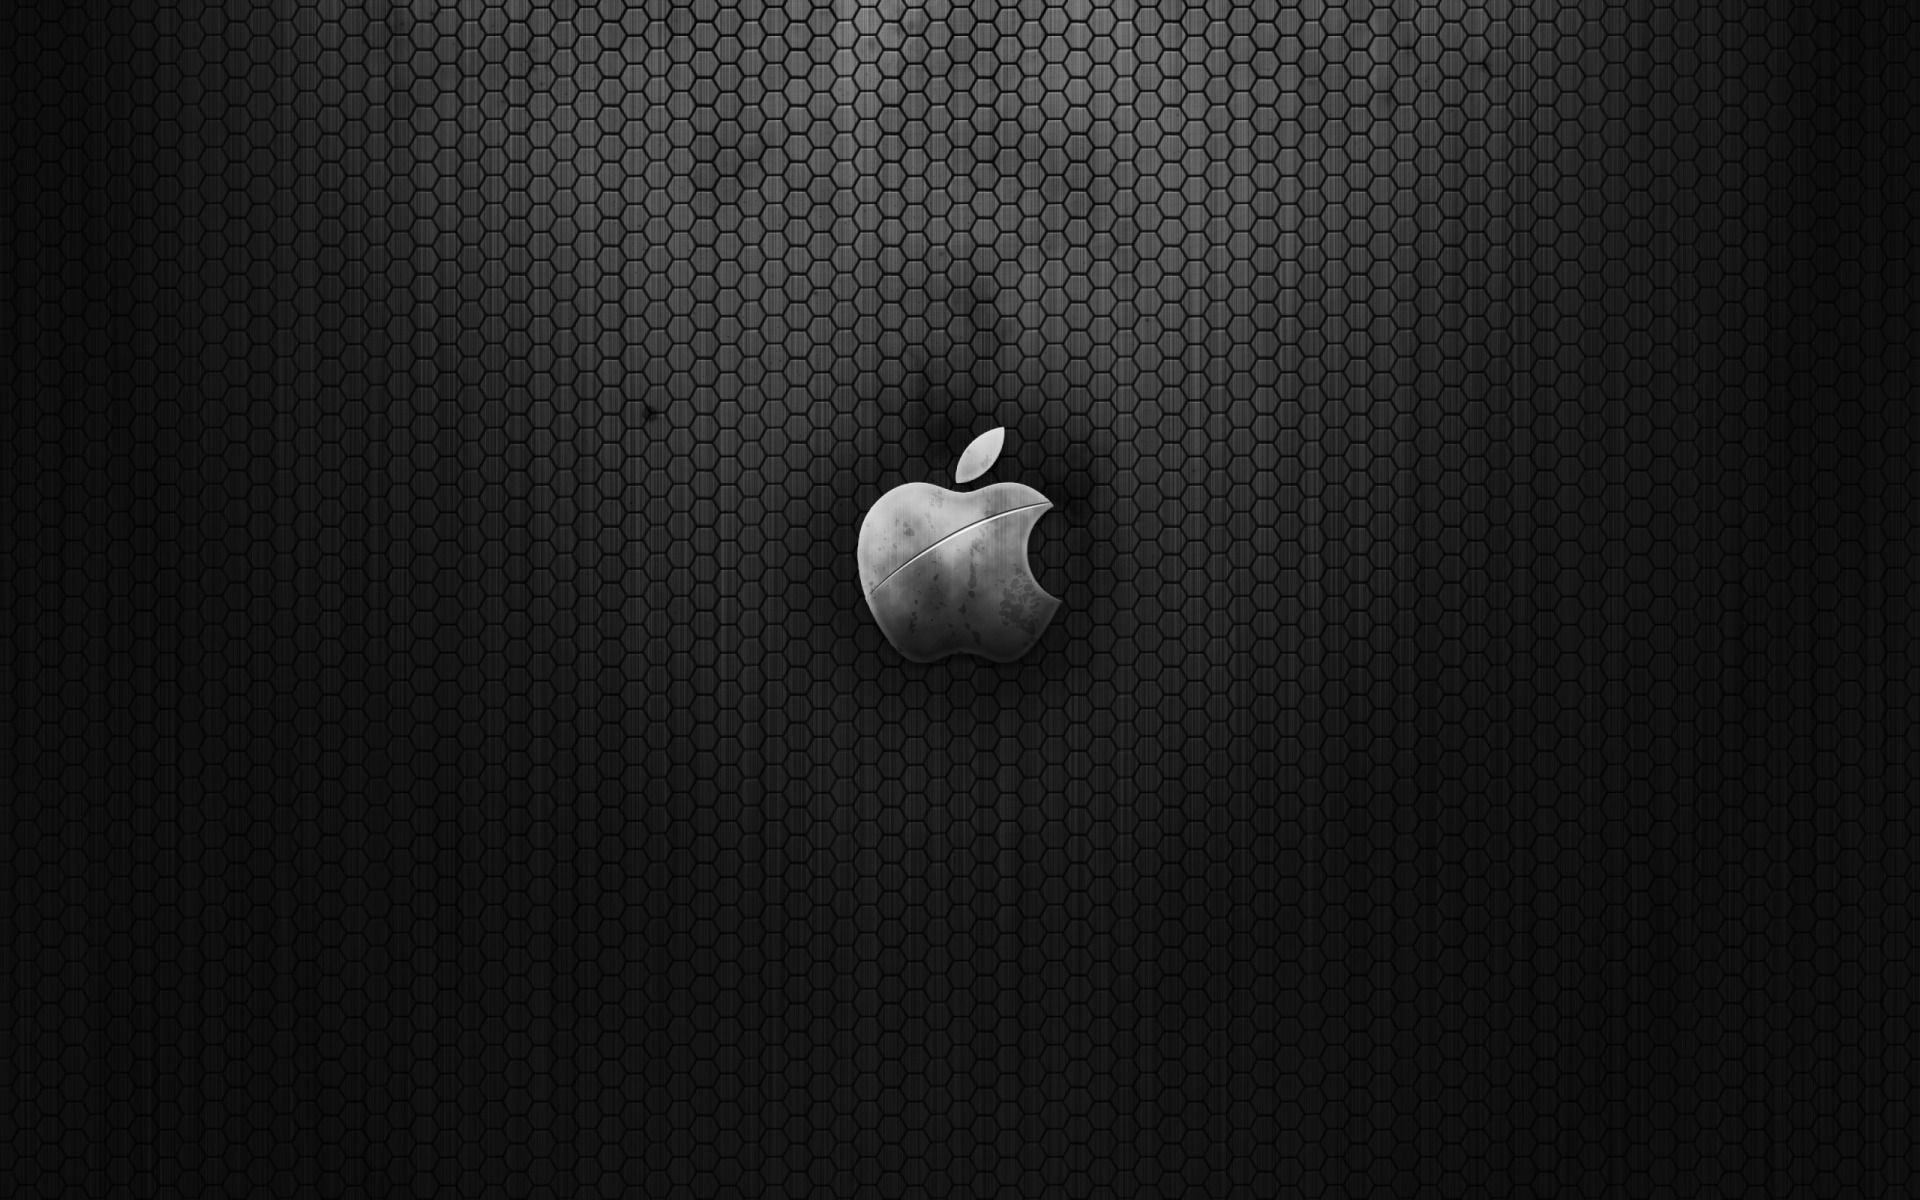 free apple wallpaper | feelgrafix | pinterest | apple